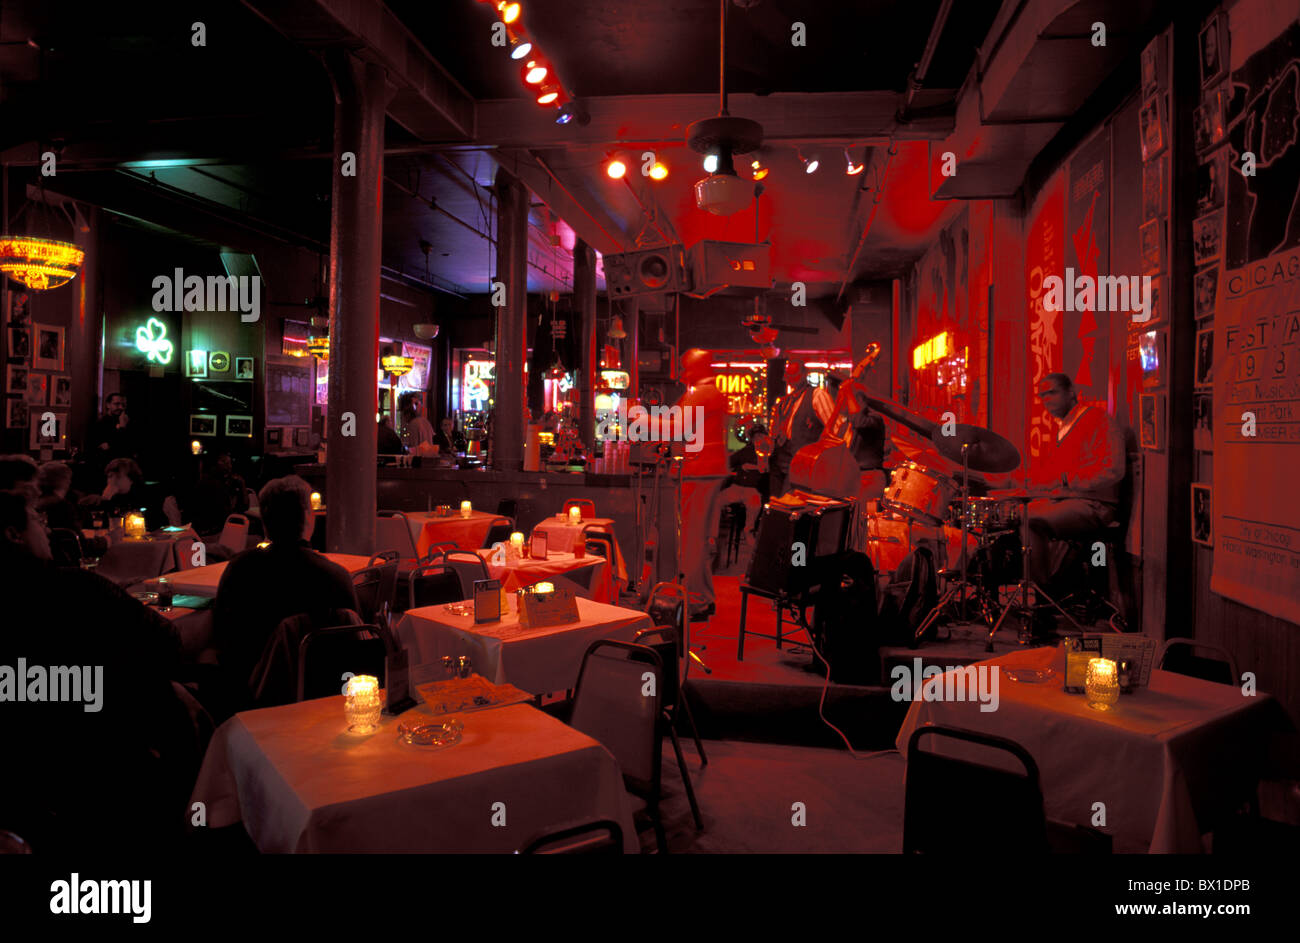 Jazz club in chicago for dating